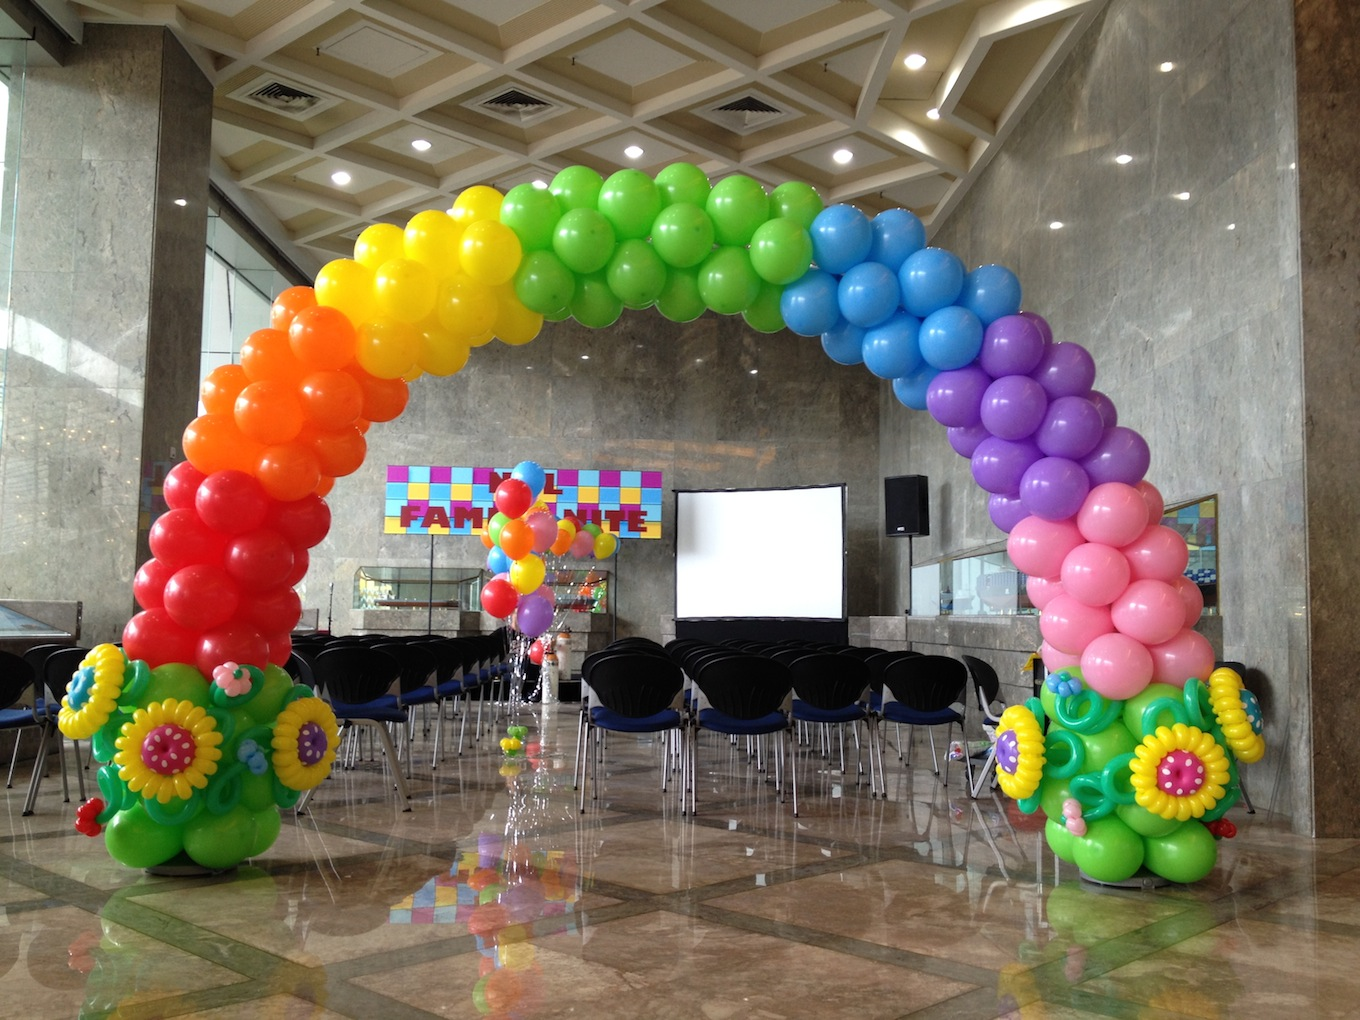 Balloon decoration ideas that balloons Balloon decoration for birthday at home